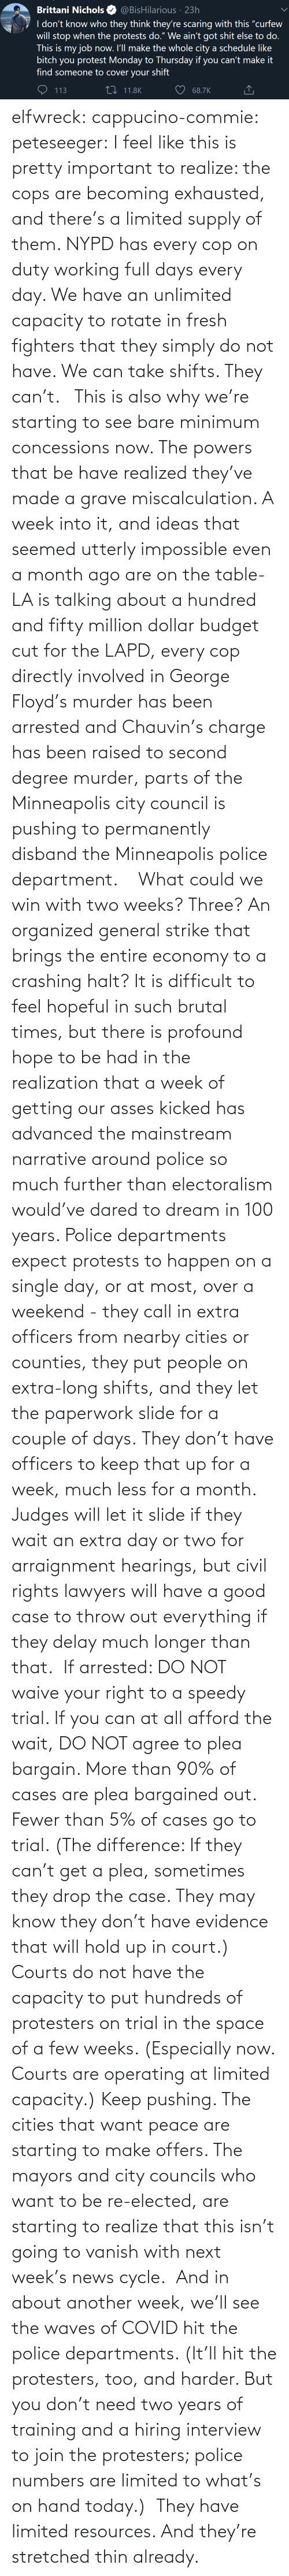 around: elfwreck:  cappucino-commie:  peteseeger: I feel like this is pretty important to realize: the cops are becoming exhausted, and there's a limited supply of them. NYPD has every cop on duty working full days every day. We have an unlimited capacity to rotate in fresh fighters that they simply do not have. We can take shifts. They can't.   This is also why we're starting to see bare minimum concessions now. The powers that be have realized they've made a grave miscalculation. A week into it, and ideas that seemed utterly impossible even a month ago are on the table- LA is talking about a hundred and fifty million dollar budget cut for the LAPD, every cop directly involved in George Floyd's murder has been arrested and Chauvin's charge has been raised to second degree murder, parts of the Minneapolis city council is pushing to permanently disband the Minneapolis police department.  What could we win with two weeks? Three? An organized general strike that brings the entire economy to a crashing halt? It is difficult to feel hopeful in such brutal times, but there is profound hope to be had in the realization that a week of getting our asses kicked has advanced the mainstream narrative around police so much further than electoralism would've dared to dream in 100 years.   Police departments expect protests to happen on a single day, or at most, over a weekend - they call in extra officers from nearby cities or counties, they put people on extra-long shifts, and they let the paperwork slide for a couple of days. They don't have officers to keep that up for a week, much less for a month. Judges will let it slide if they wait an extra day or two for arraignment hearings, but civil rights lawyers will have a good case to throw out everything if they delay much longer than that. If arrested: DO NOT waive your right to a speedy trial. If you can at all afford the wait, DO NOT agree to plea bargain. More than 90% of cases are plea bargained out. Fewer than 5% of cases g